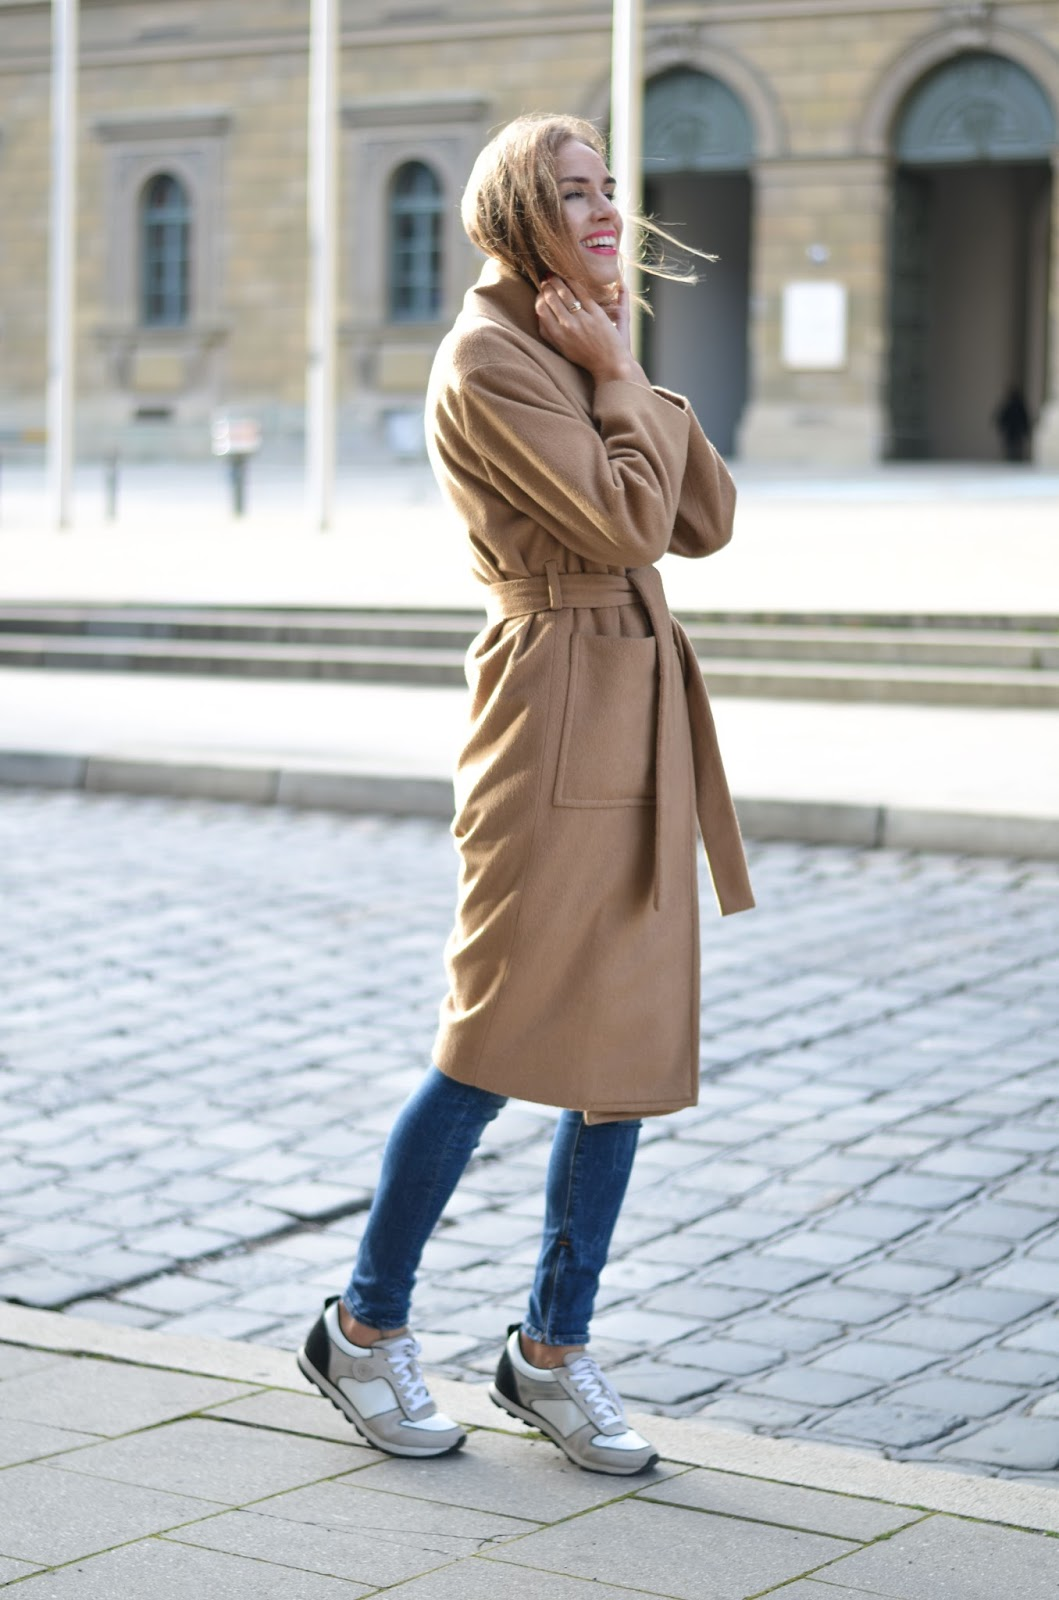 kristjaana mere mango belted camel coat skinny jeans armani sneakers winter outfit